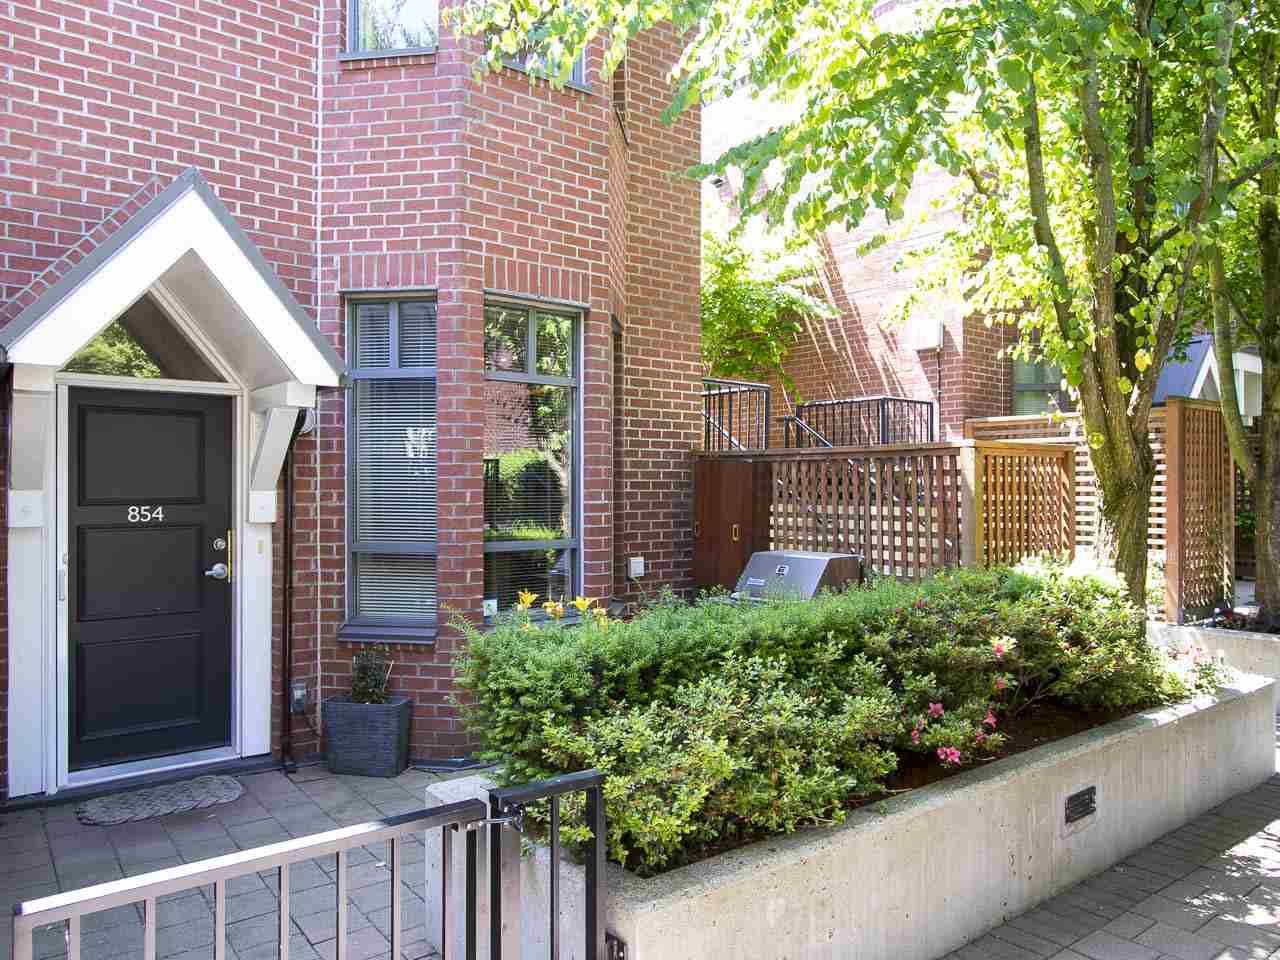 """Main Photo: 854 W 6TH Avenue in Vancouver: Fairview VW Townhouse for sale in """"BOXWOOD GREEN"""" (Vancouver West)  : MLS®# R2184606"""